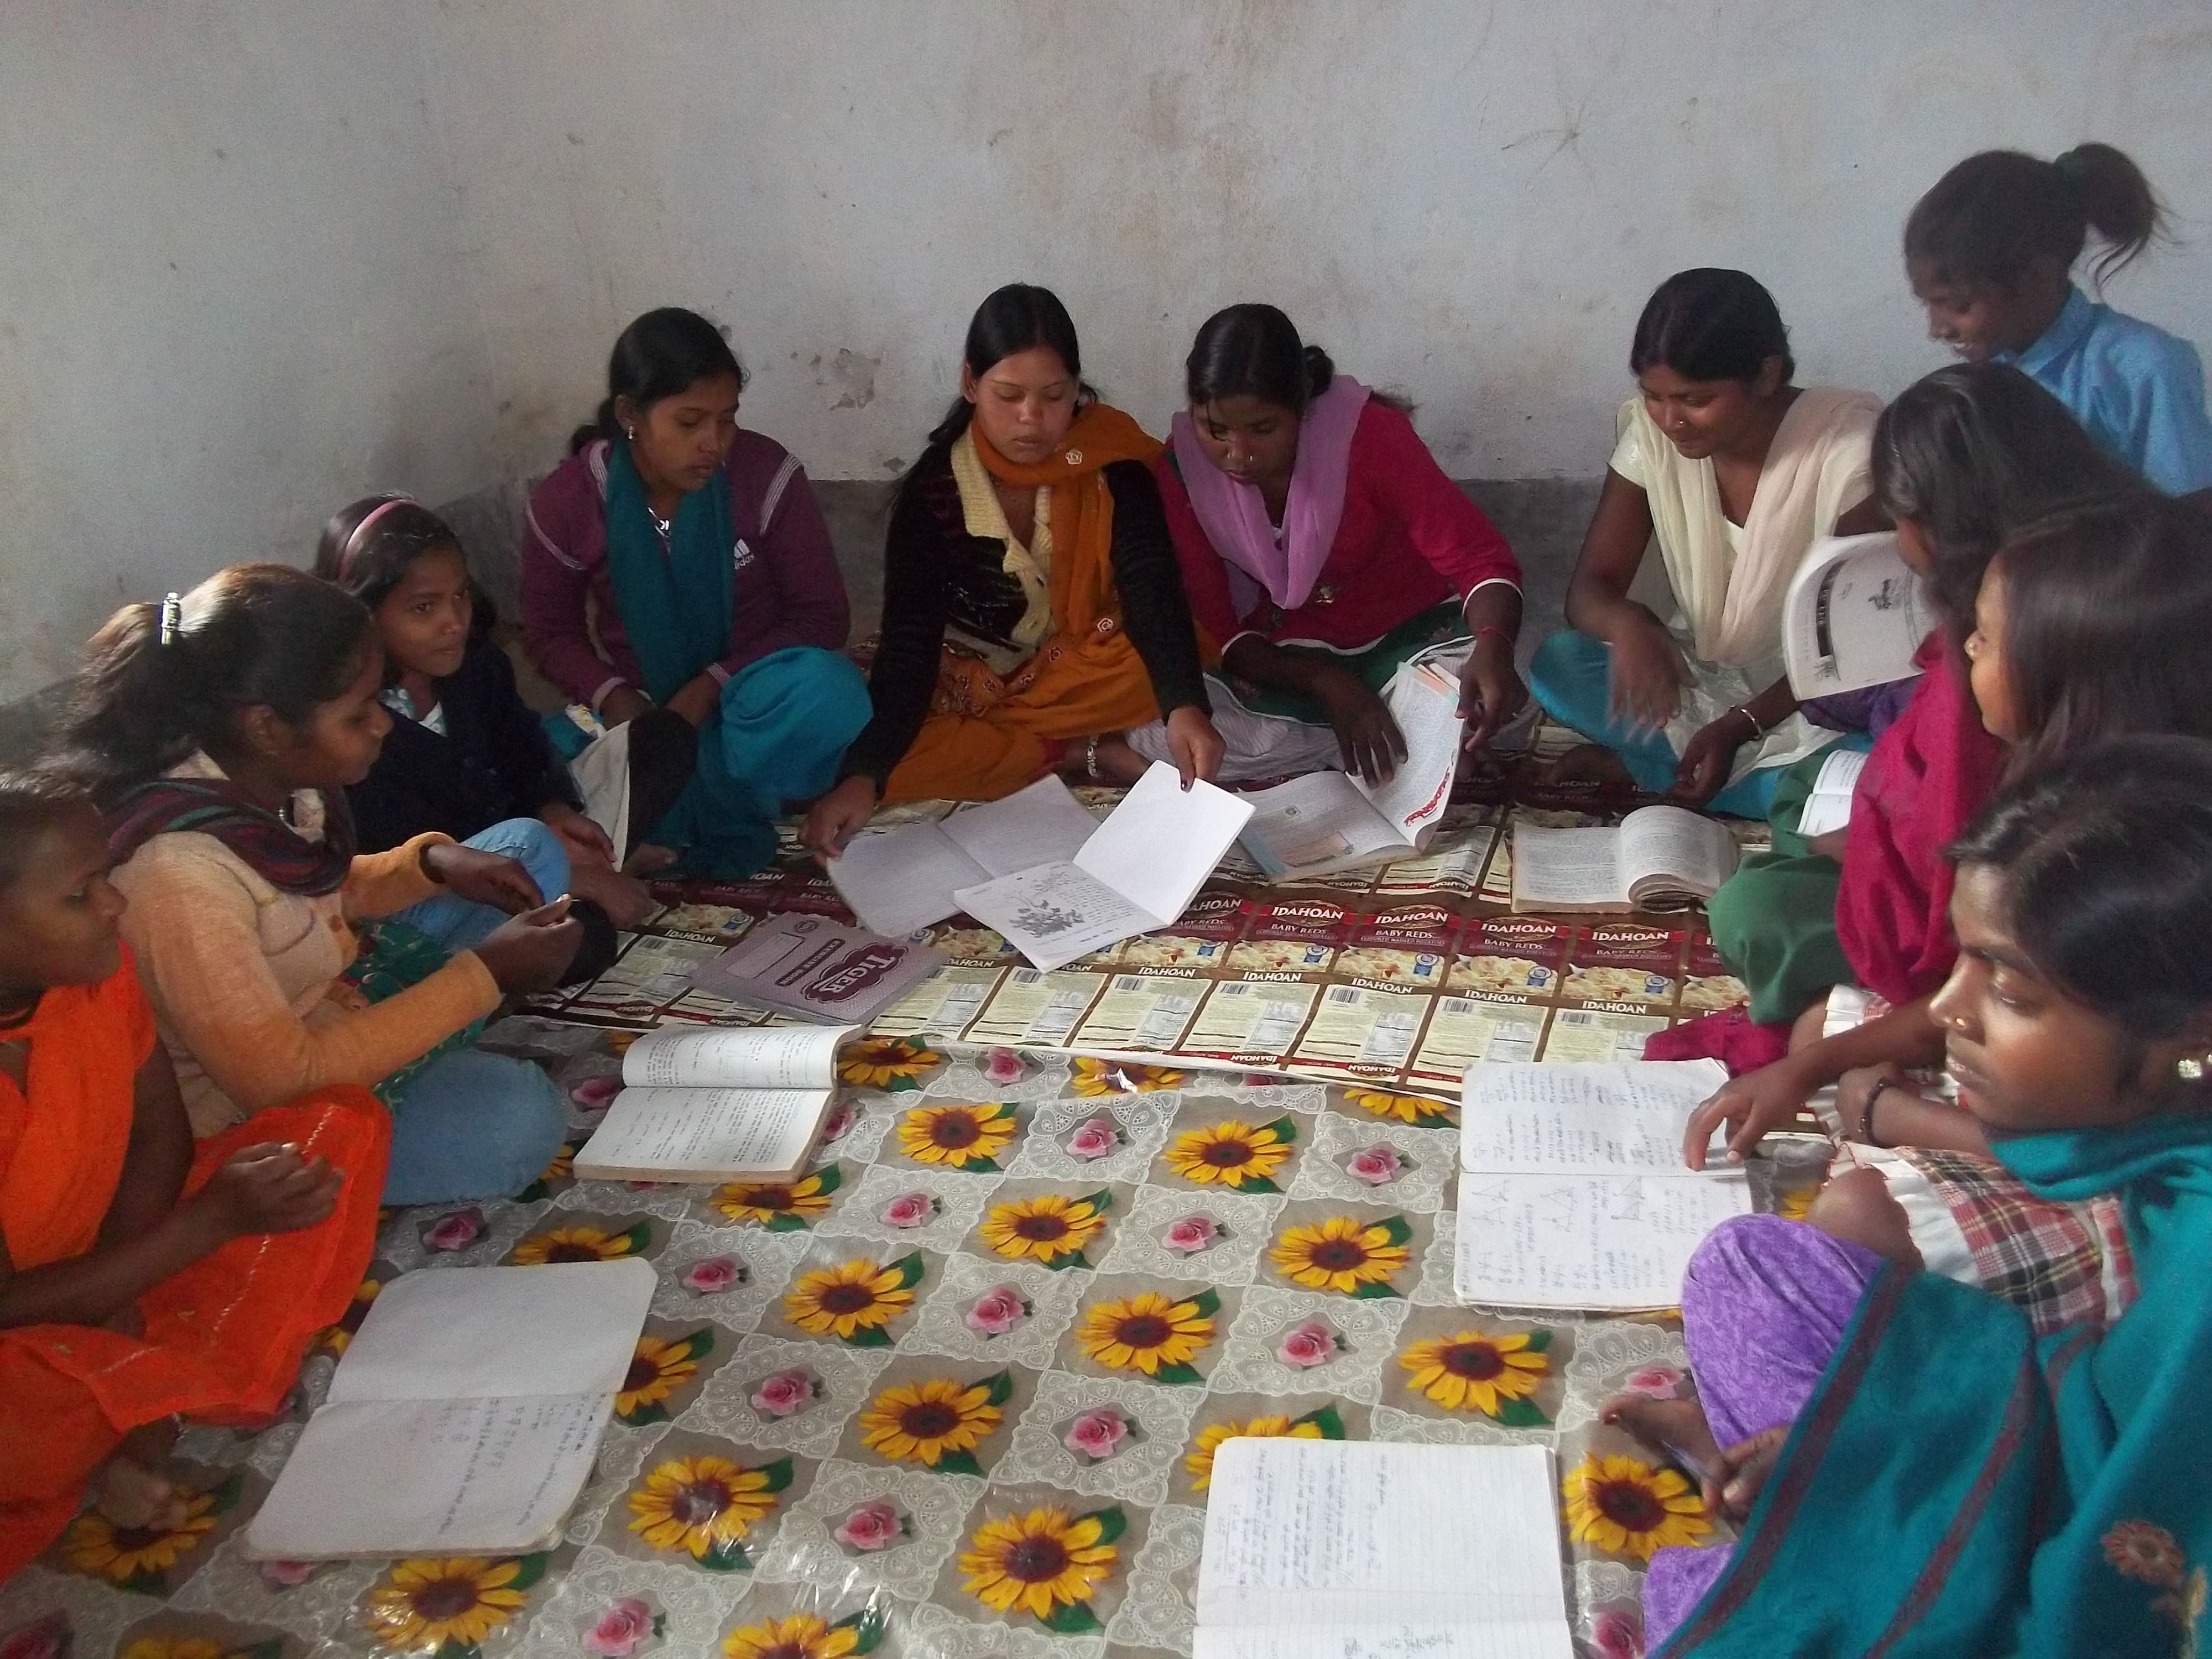 Sweta Devi, (fifth from left) a graduate in Rural Development, takes her role as a health volunteer very seriously. (Credit: Saadia Azim\WFS)